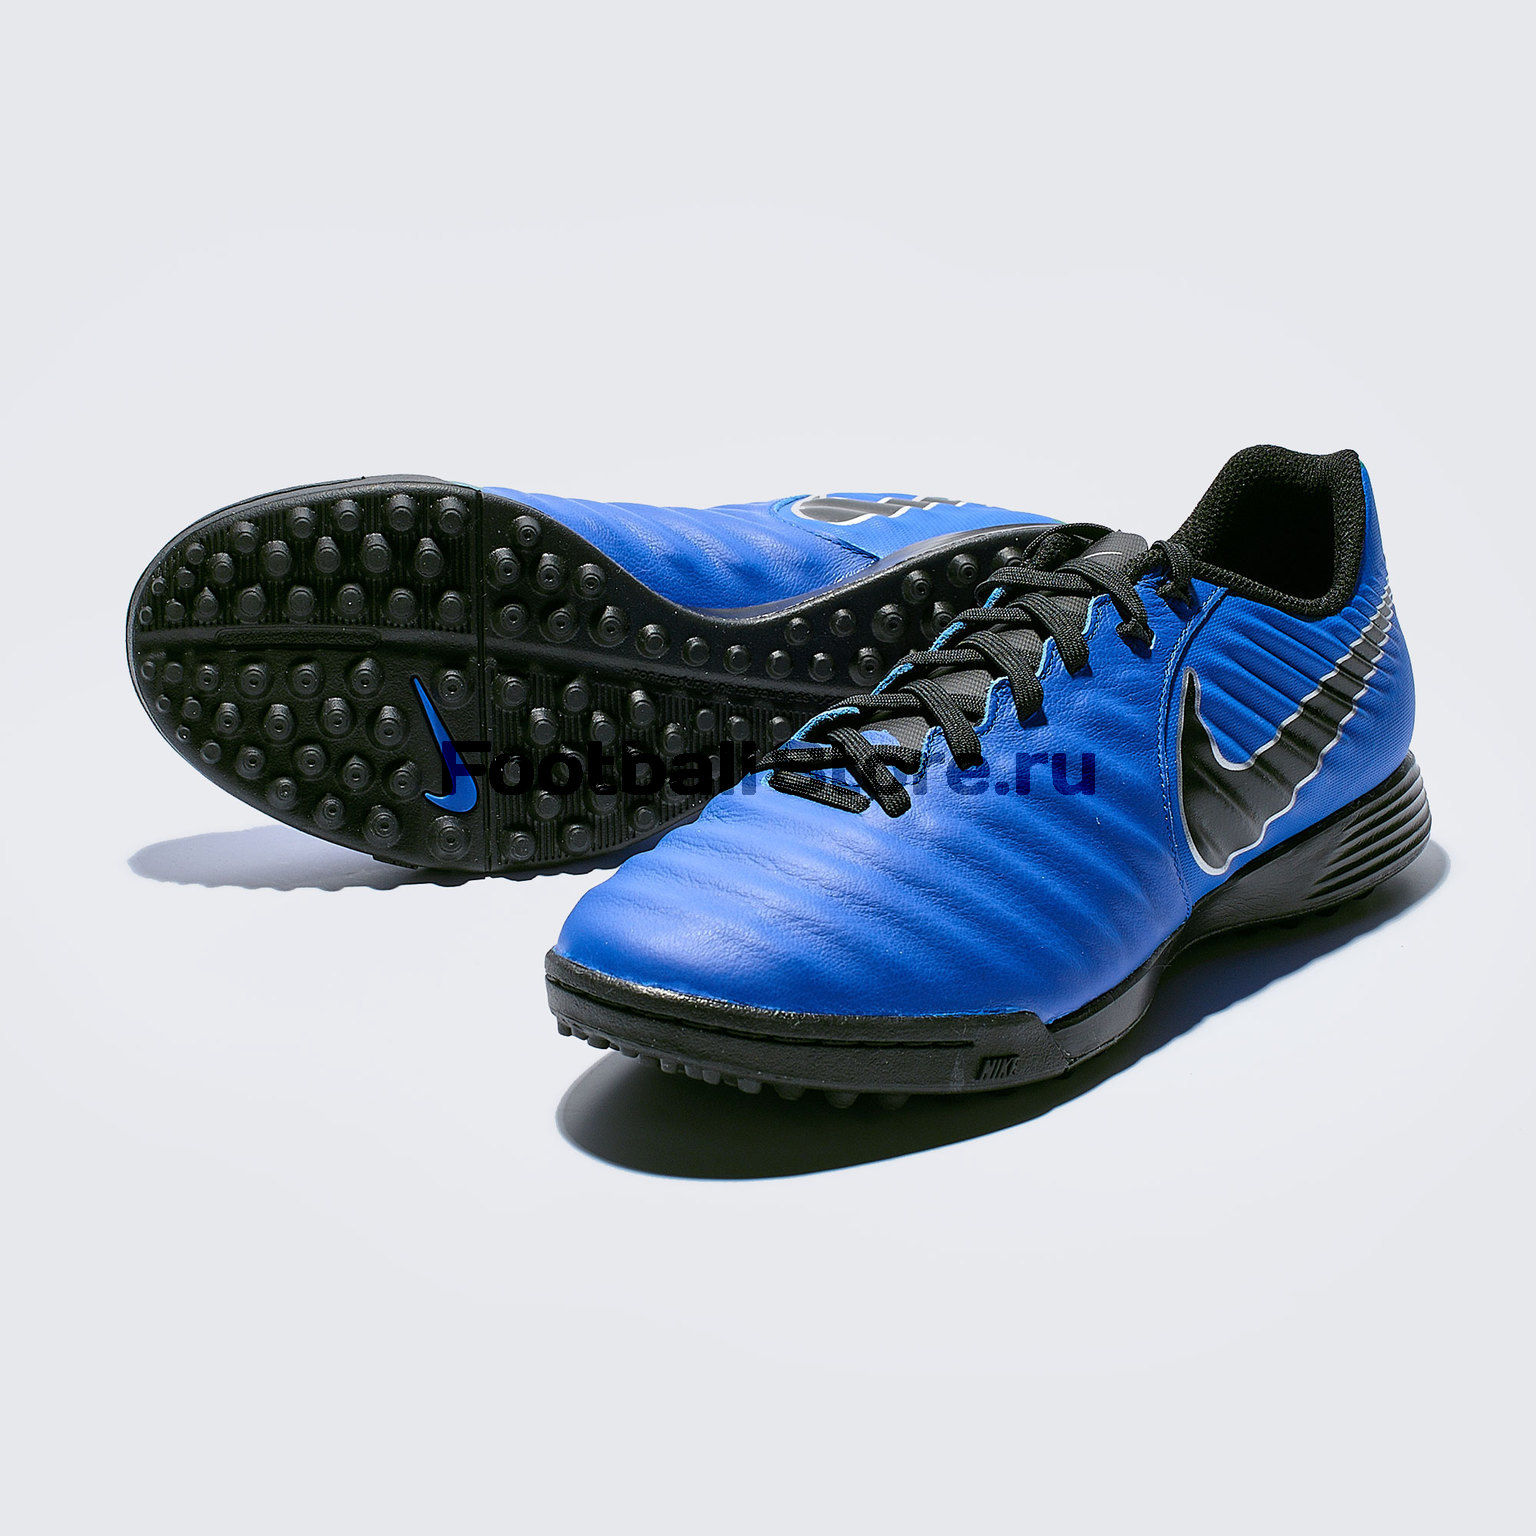 Шиповки Nike LegendX 7 Academy TF AH7243-400 бутсы nike шиповки nike jr tiempox legend vi tf 819191 018